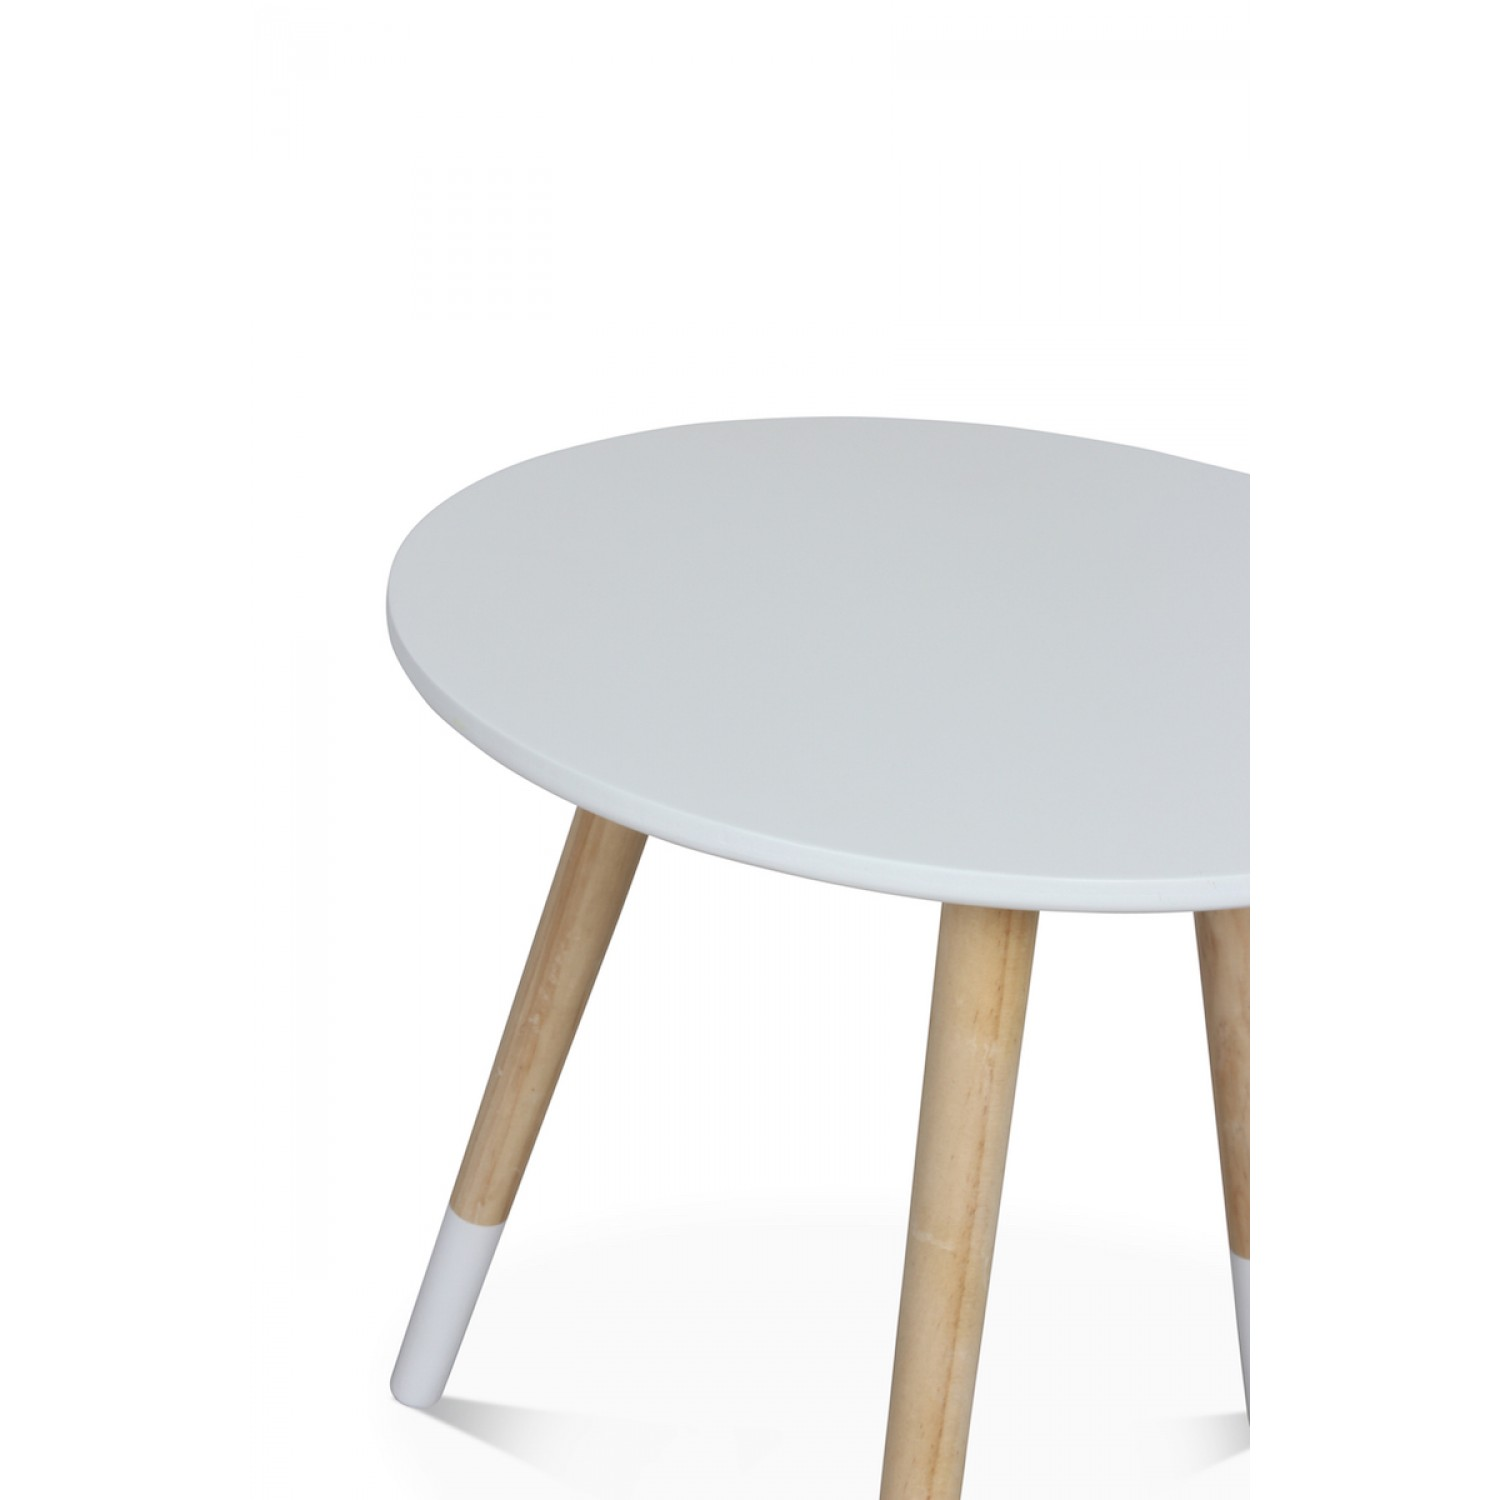 Table Basse Blanche Scandinave Table Basse Scandinave Blanche GjÖktÀ Diamètre 40 Cm